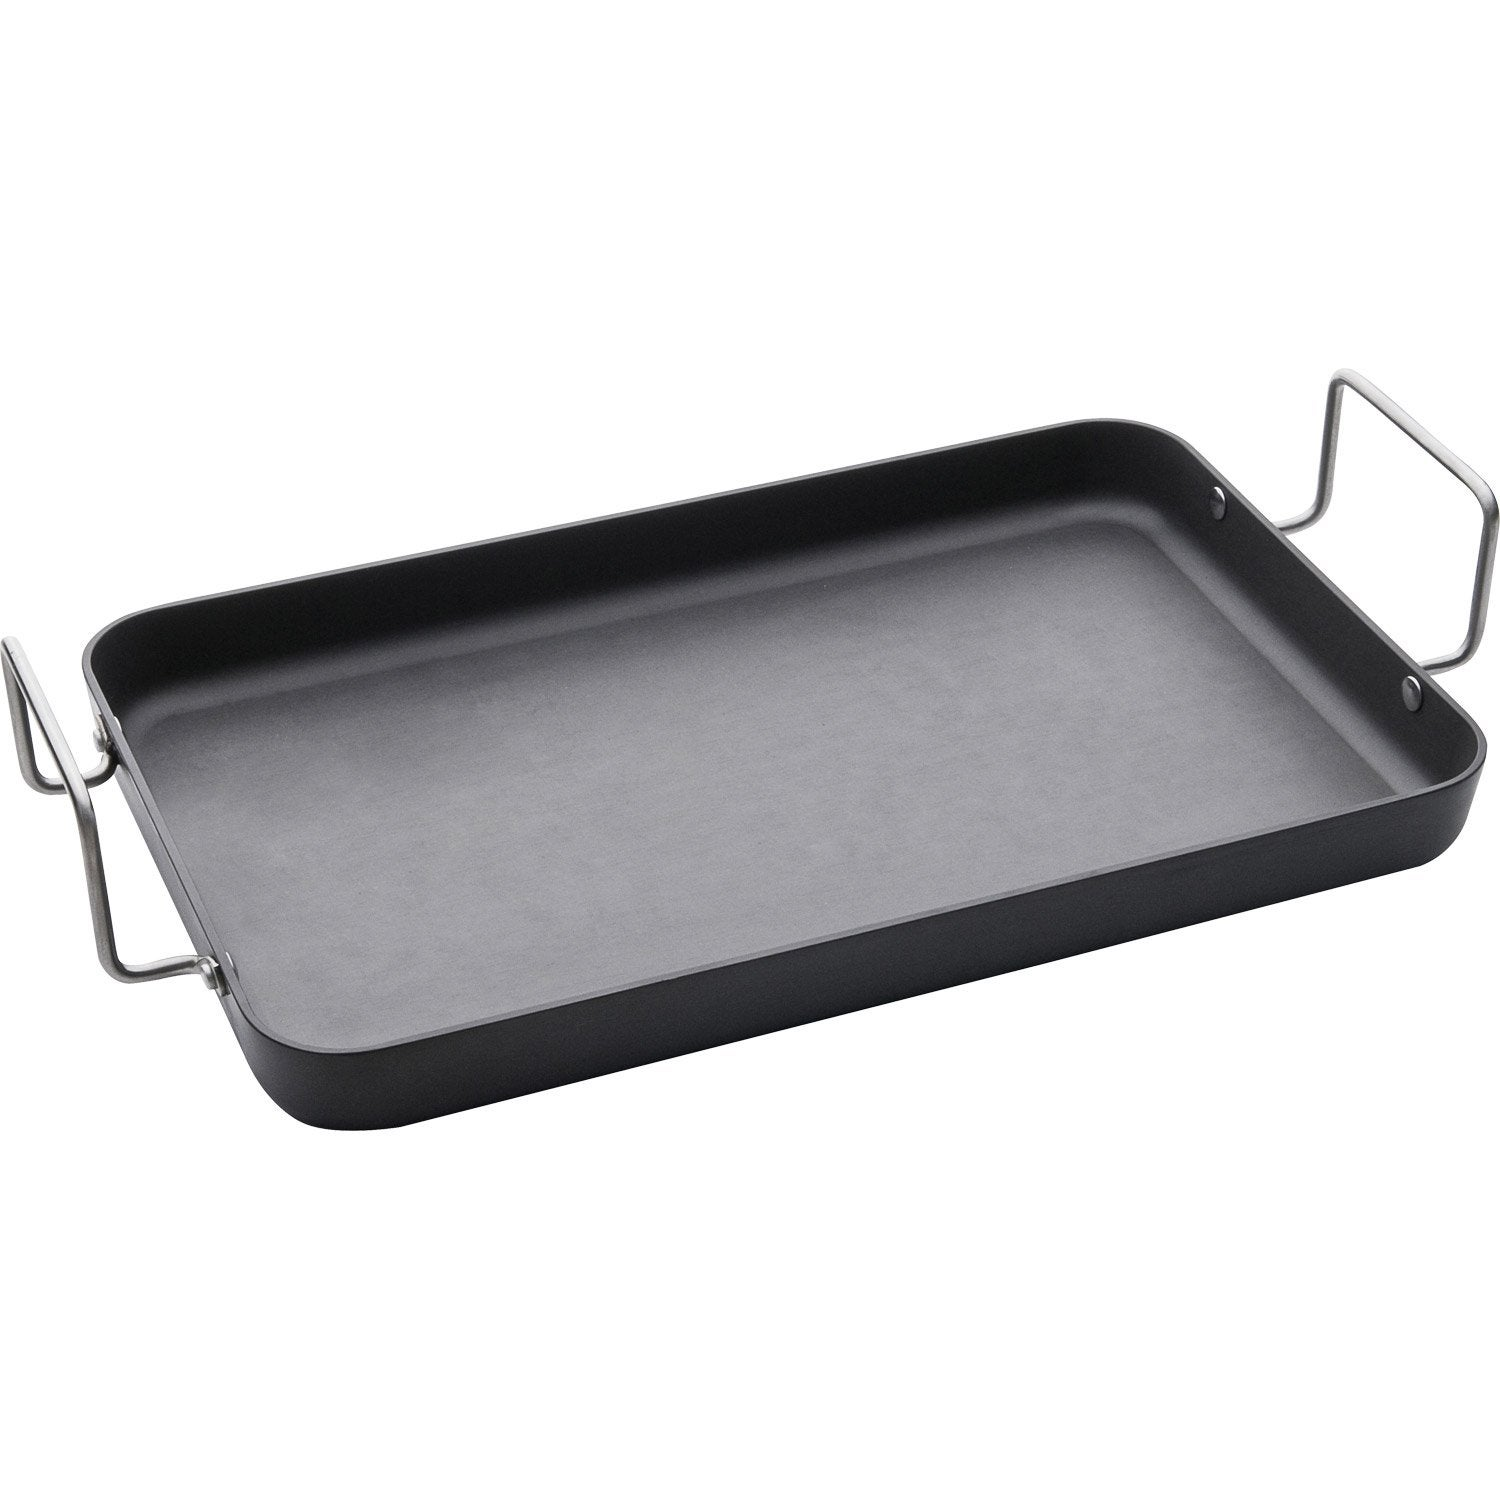 Plat de cuisson inox cadac leroy merlin - Table de cuisson leroy merlin ...